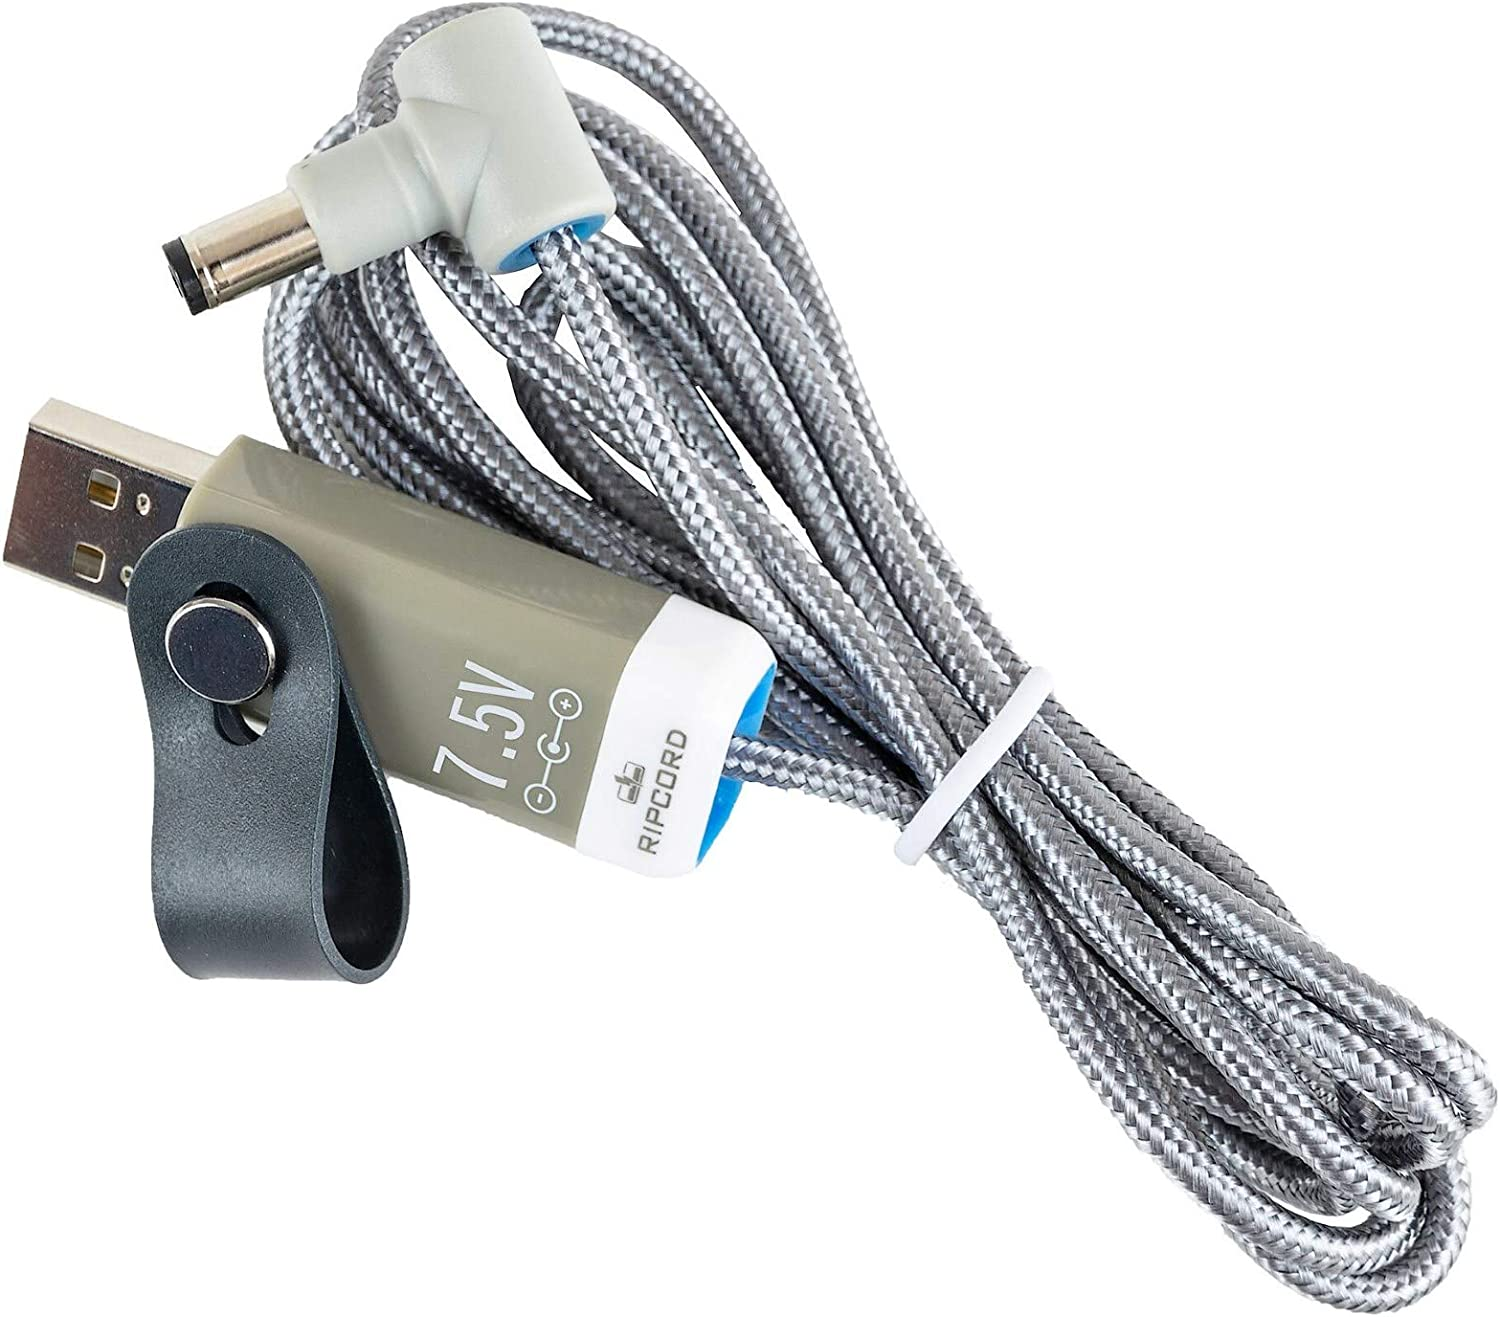 USB to 7.5V DC Power Cable Compatible with The Brother P-Touch 25 Label Printer myVolts Ripcord